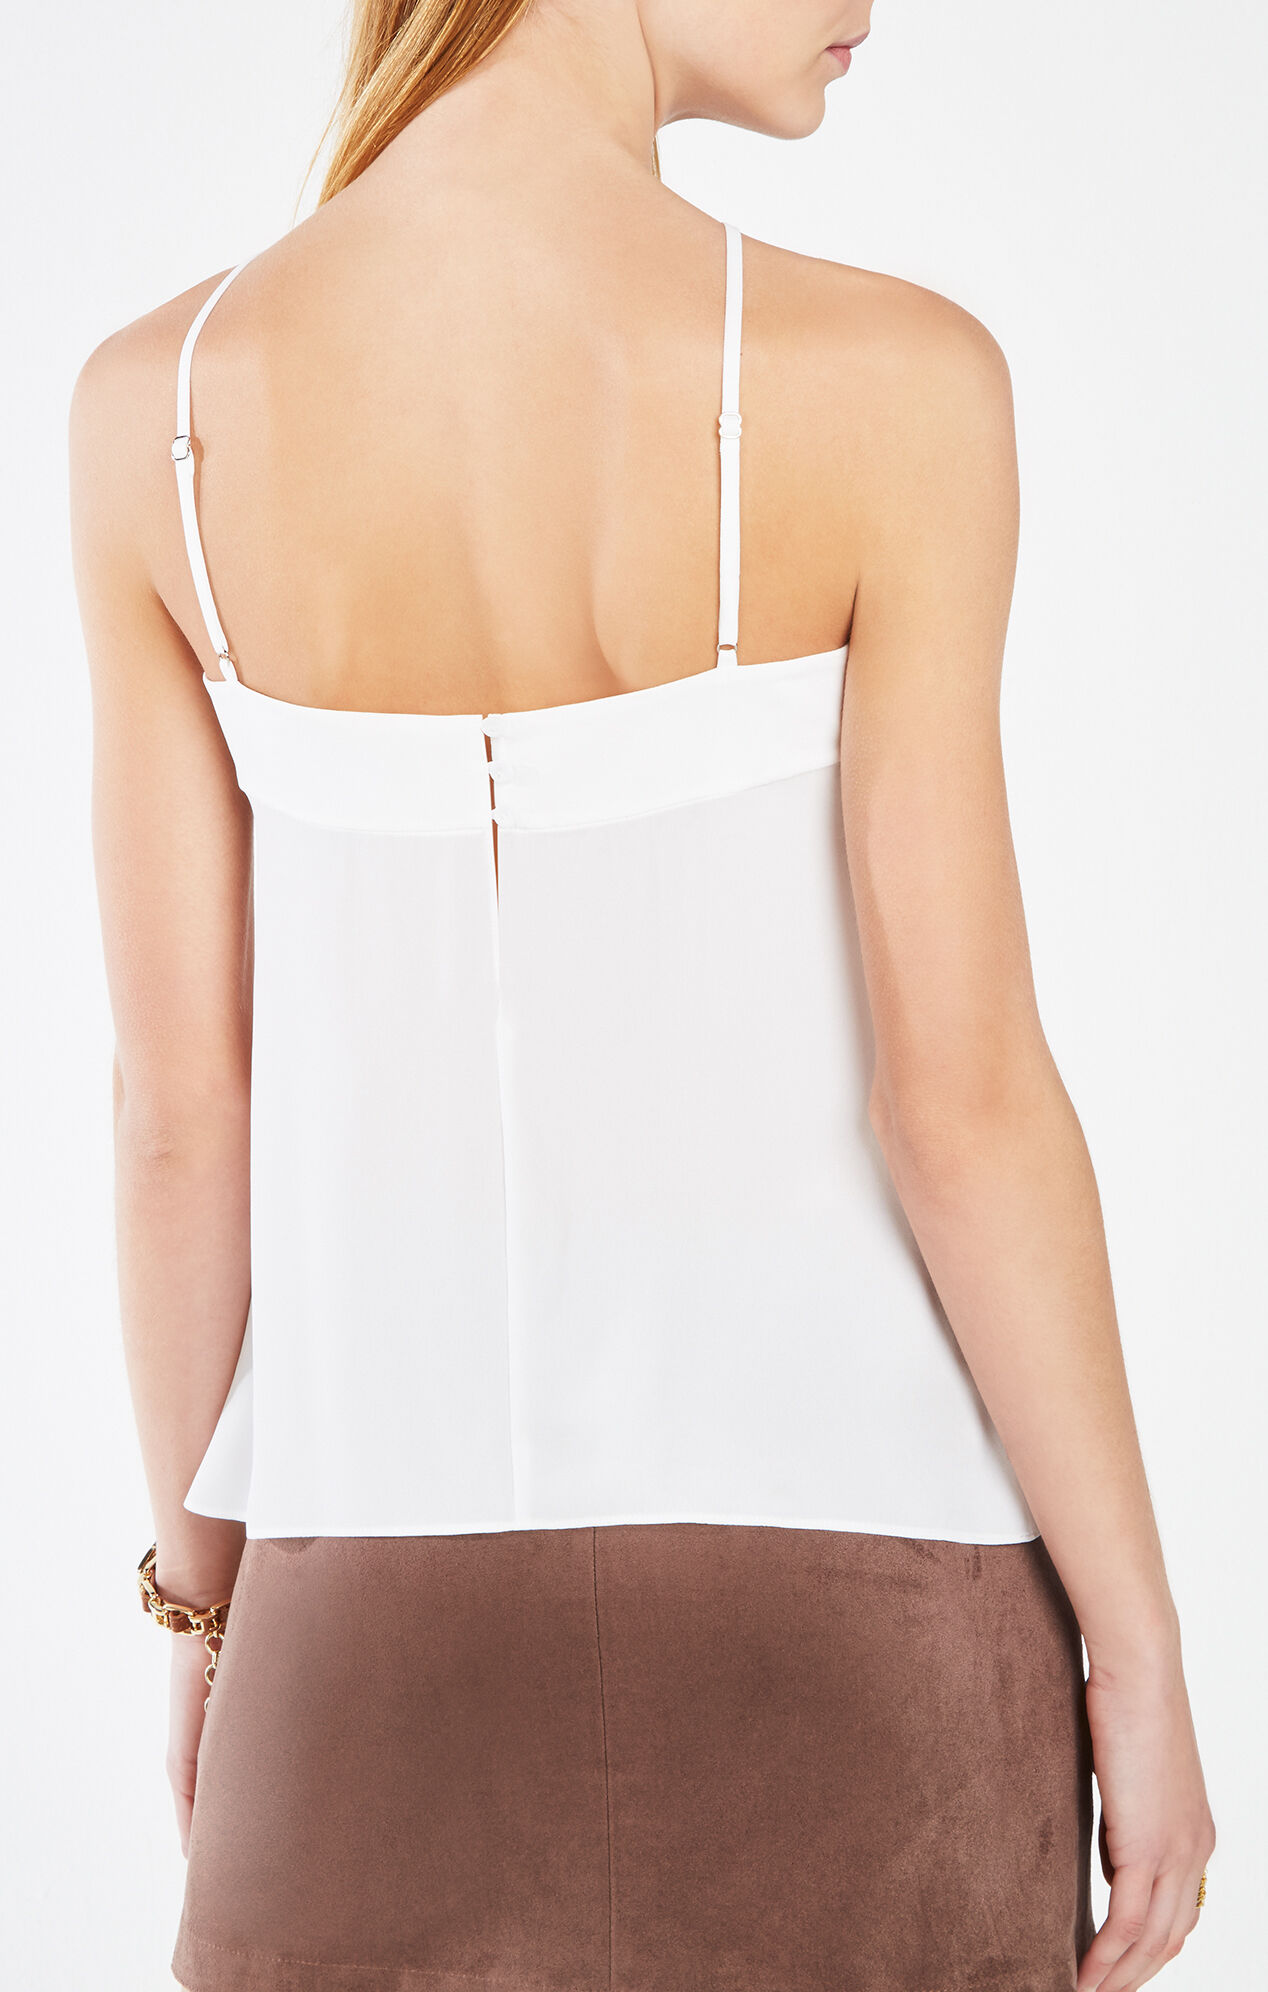 Crisscross back strapy halter crop tank top featuring with striped or Fancyqube Women's Halter Neck Cami Crop Top Sexy Mesh Racerback Tank Top. by Fancyqube. $ - $ $ 4 $ 7 99 Prime. FREE Shipping on eligible orders. Some sizes/colors are Prime eligible. out of 5 stars